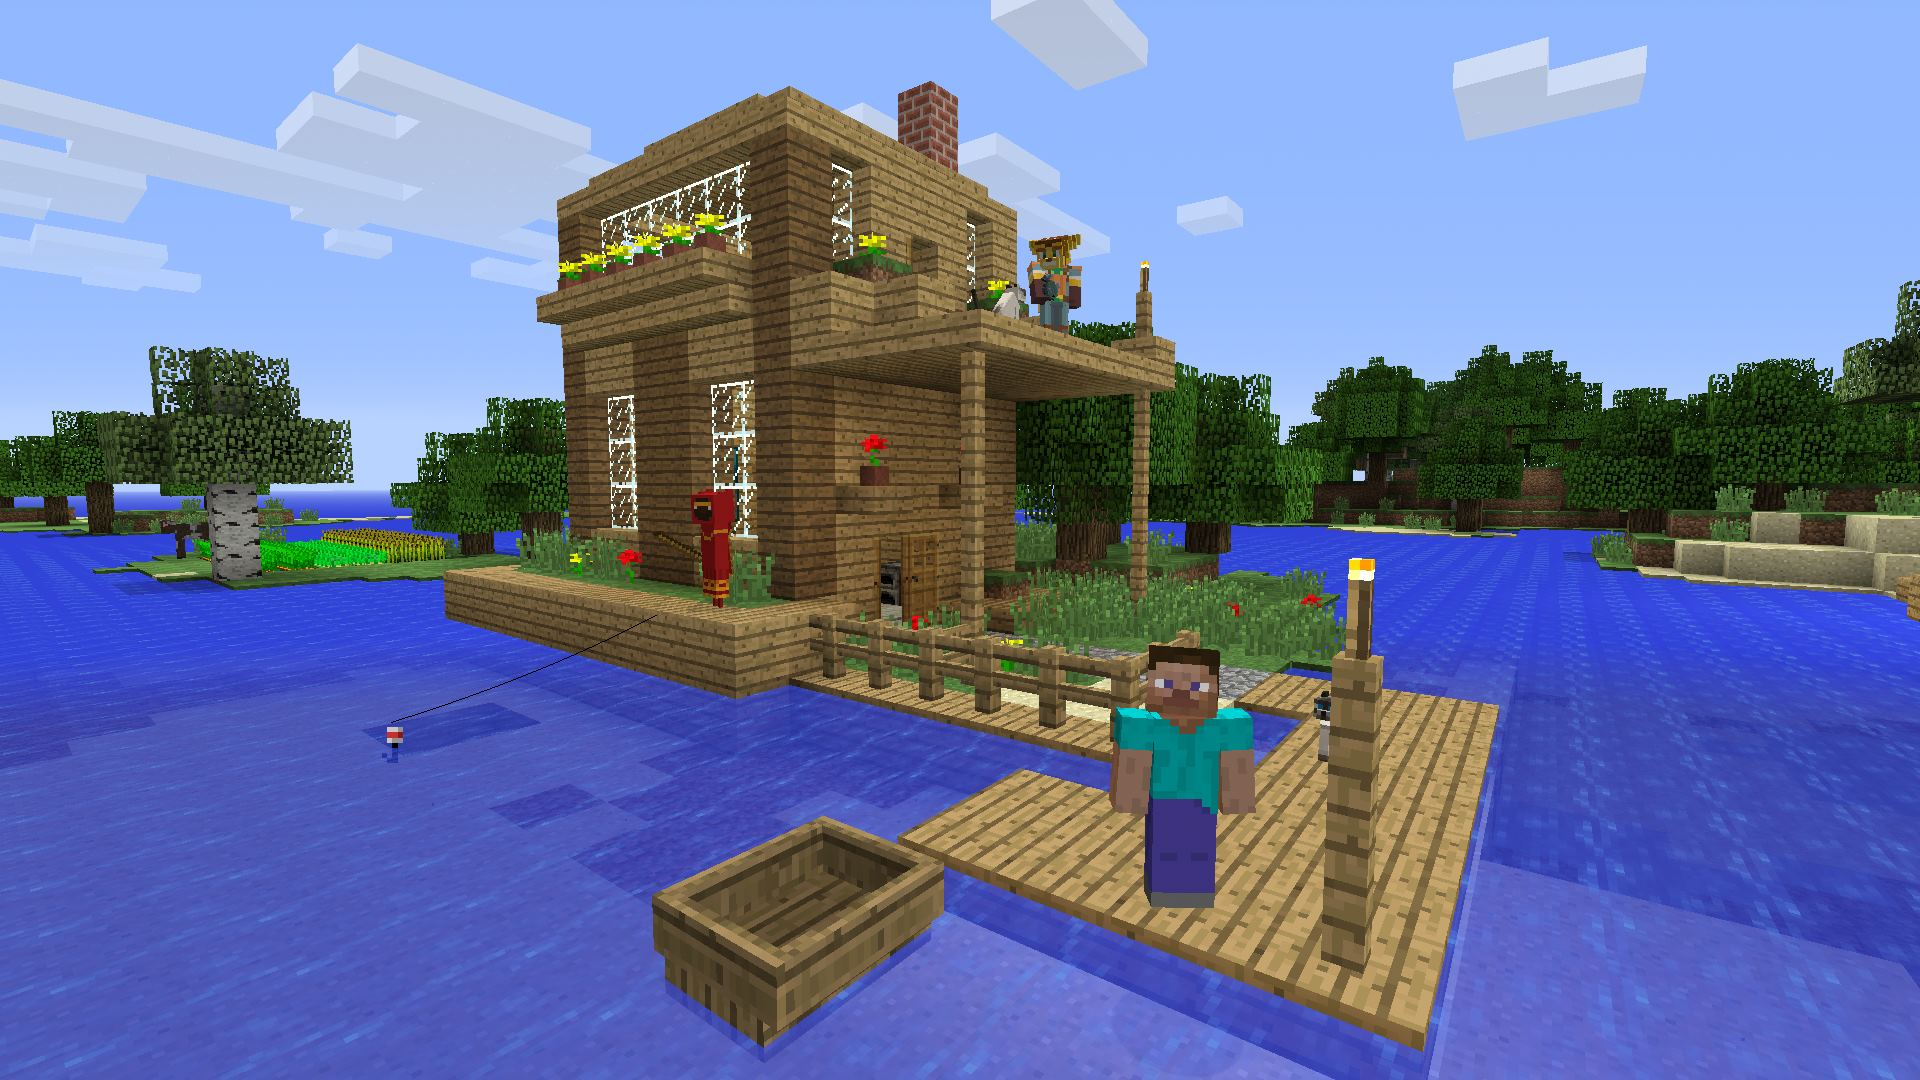 Minecraft PlayStation Edition Auf PS Offizieller PlayStation - Minecraft pocket edition online spielen deutsch